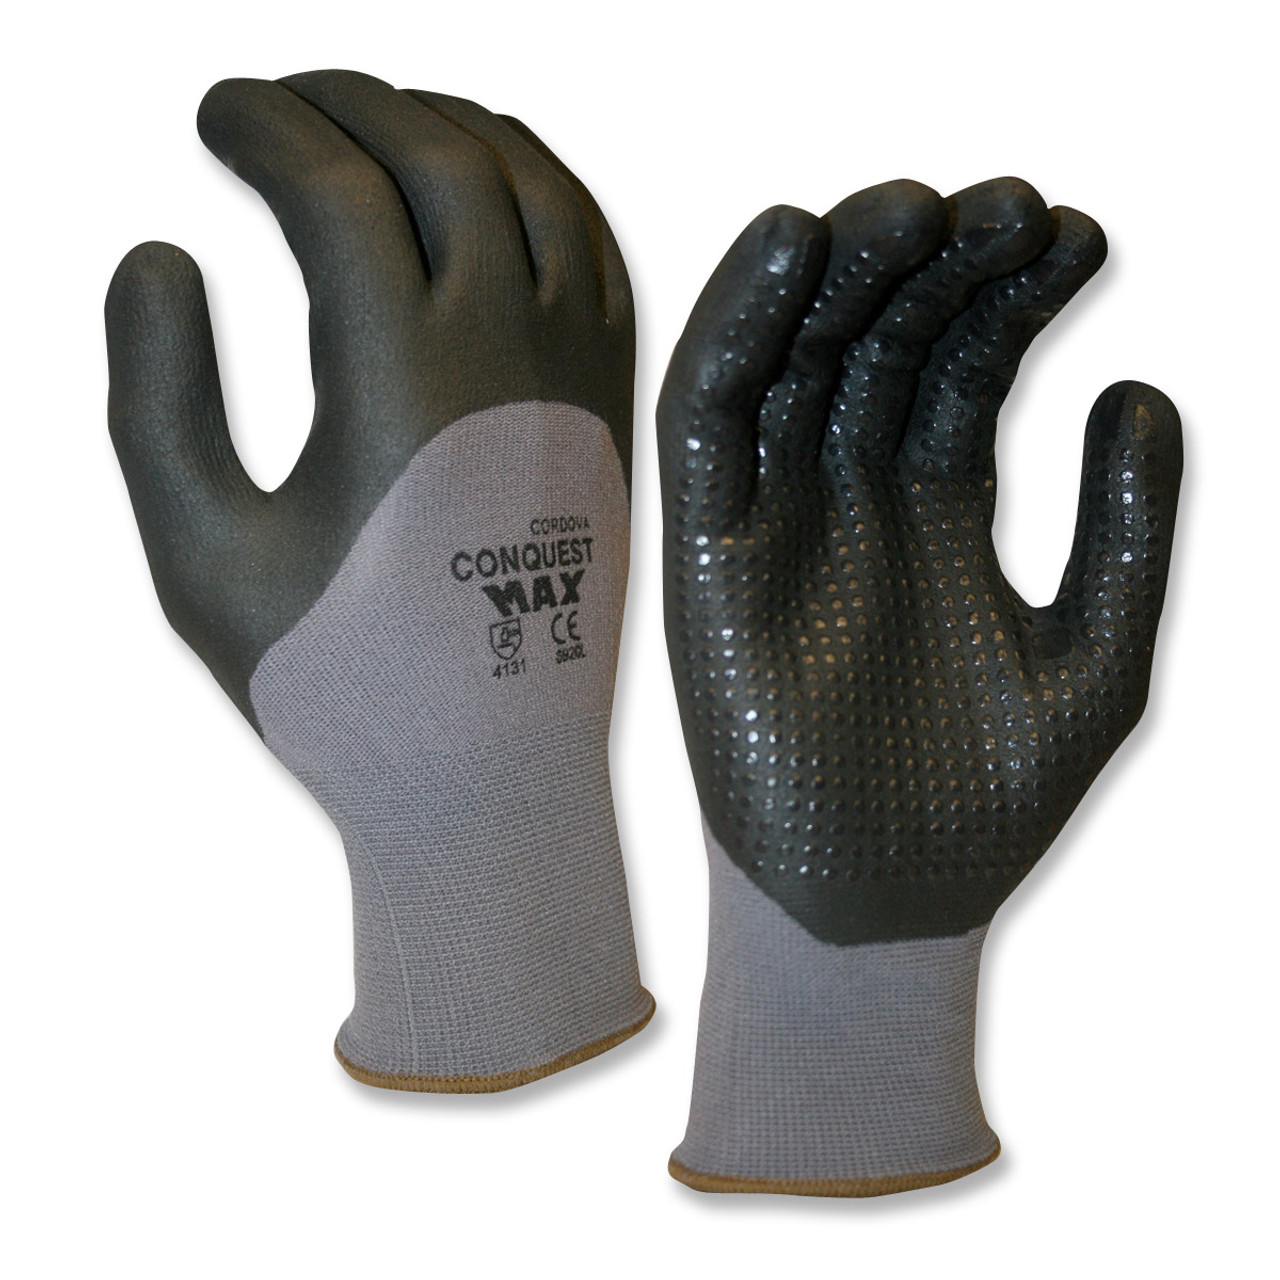 6920: Cordova Conquest Max Gloves